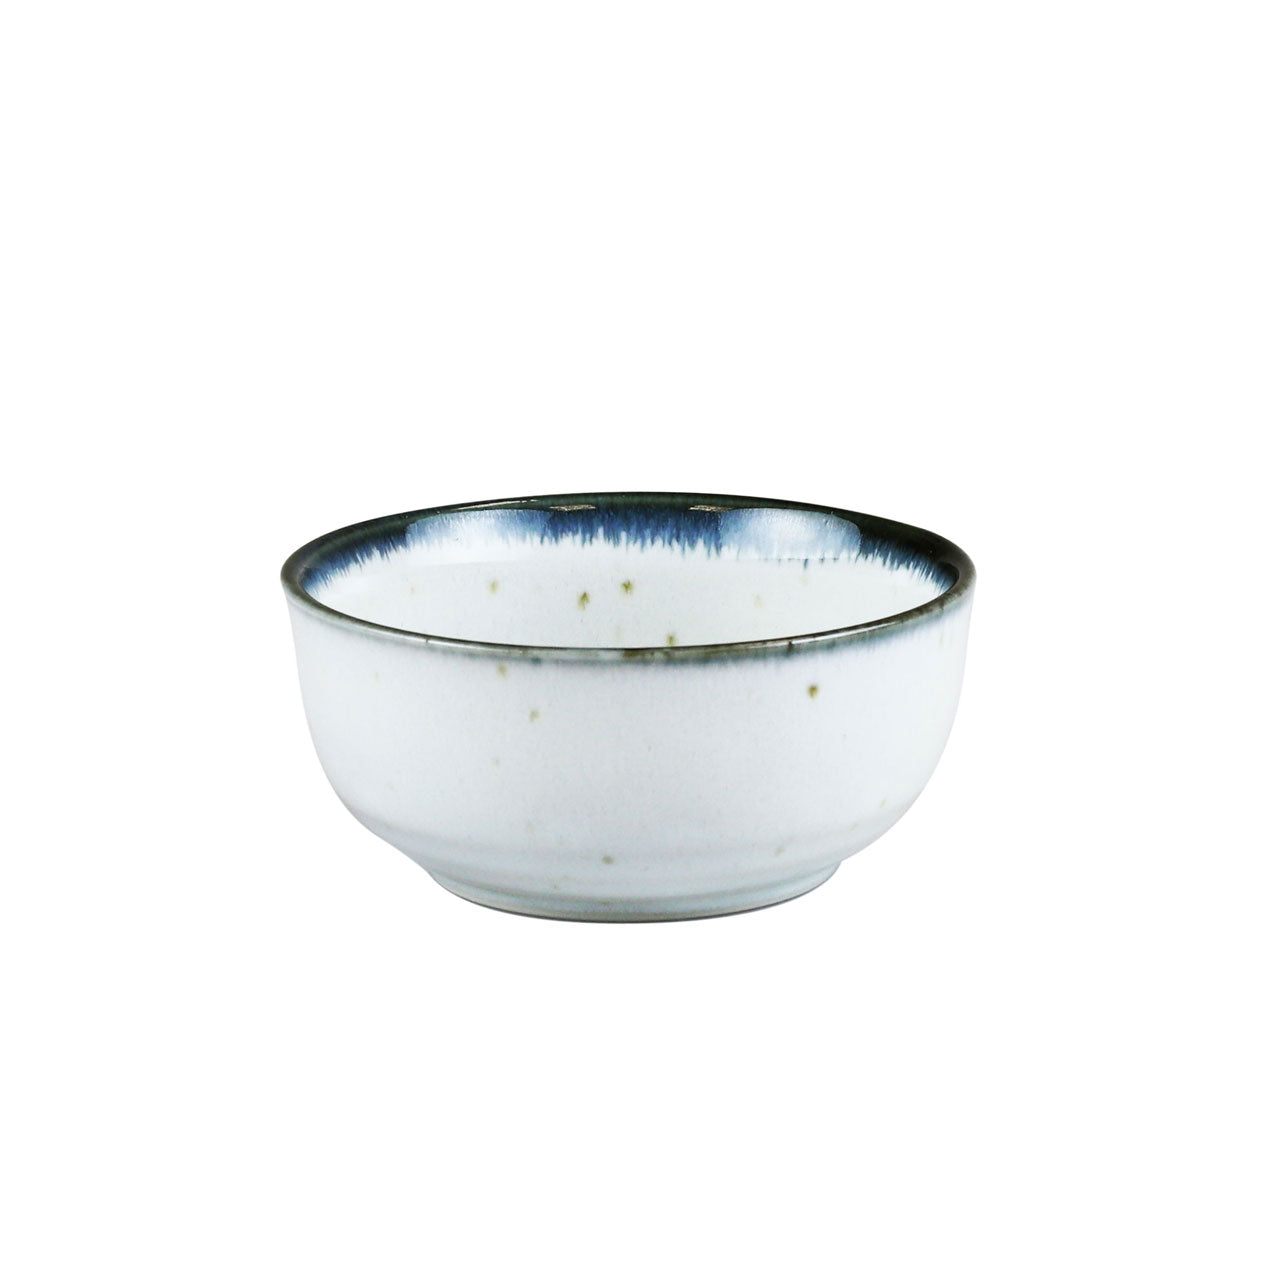 "Shirokinyo Ivory Speckled Kobachi Bowl with Indigo Rim 9 fl oz / 4.36"" dia"